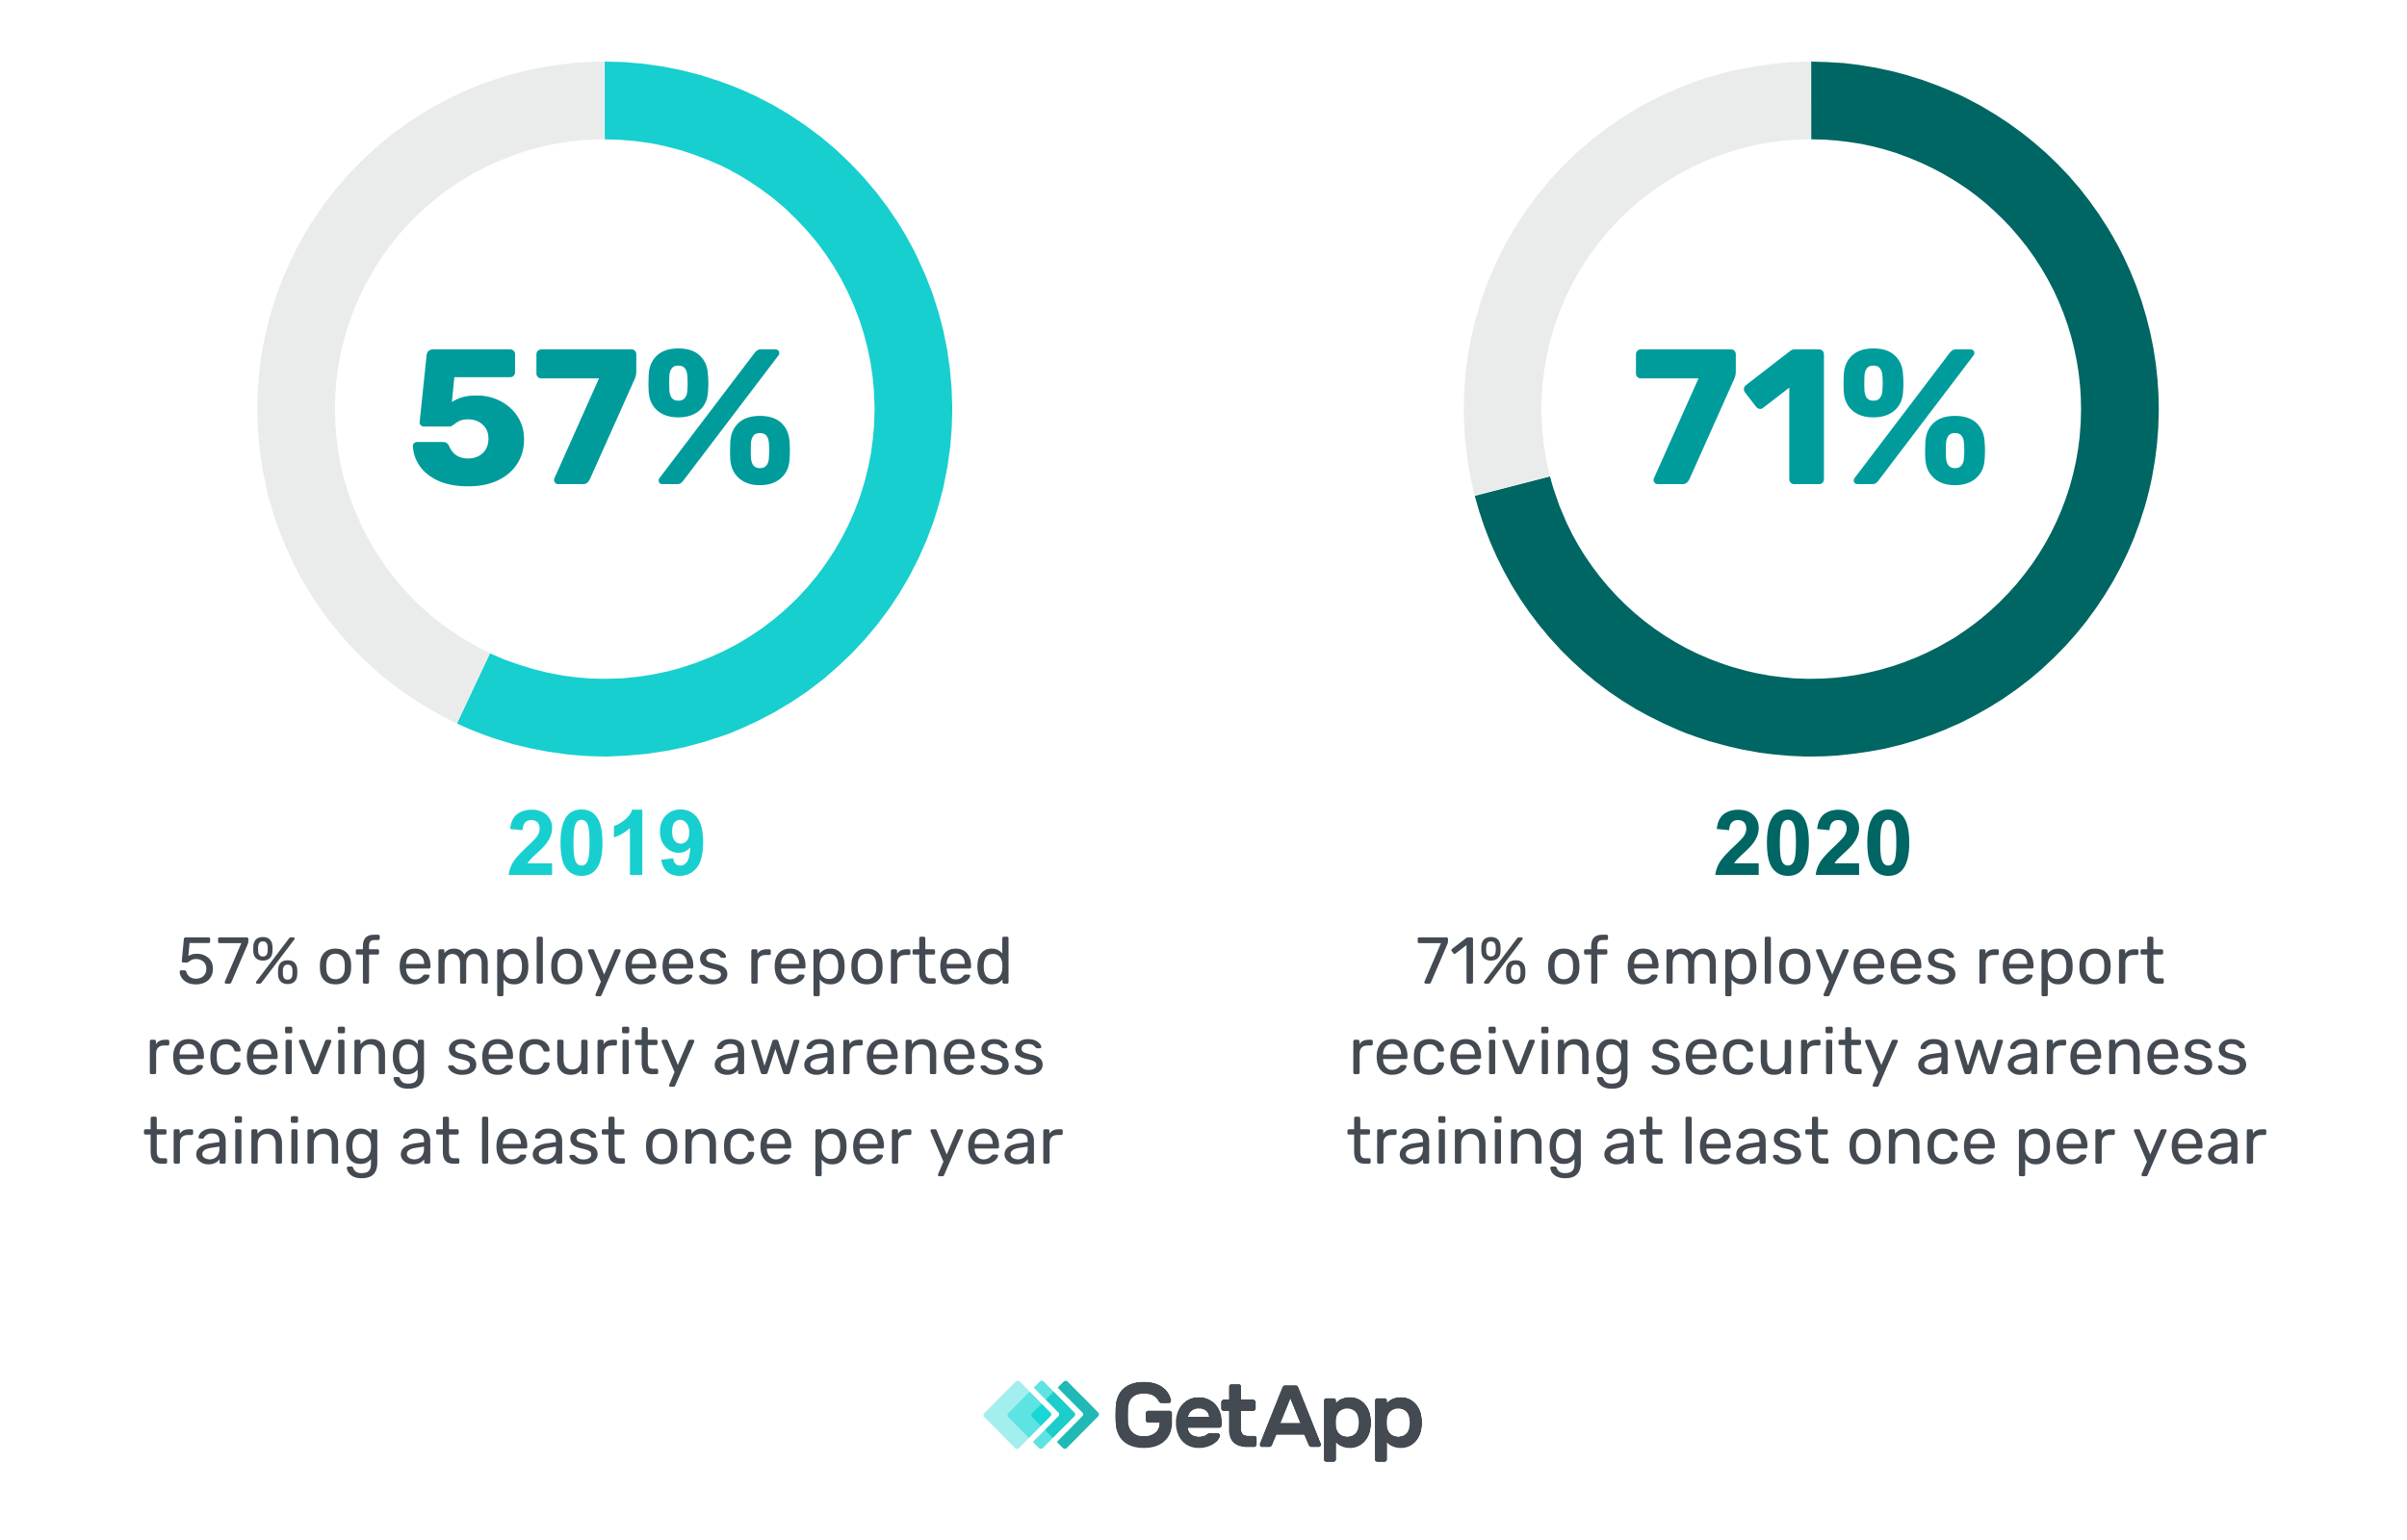 Graphic showing the percentage of employees who receive security awareness training.